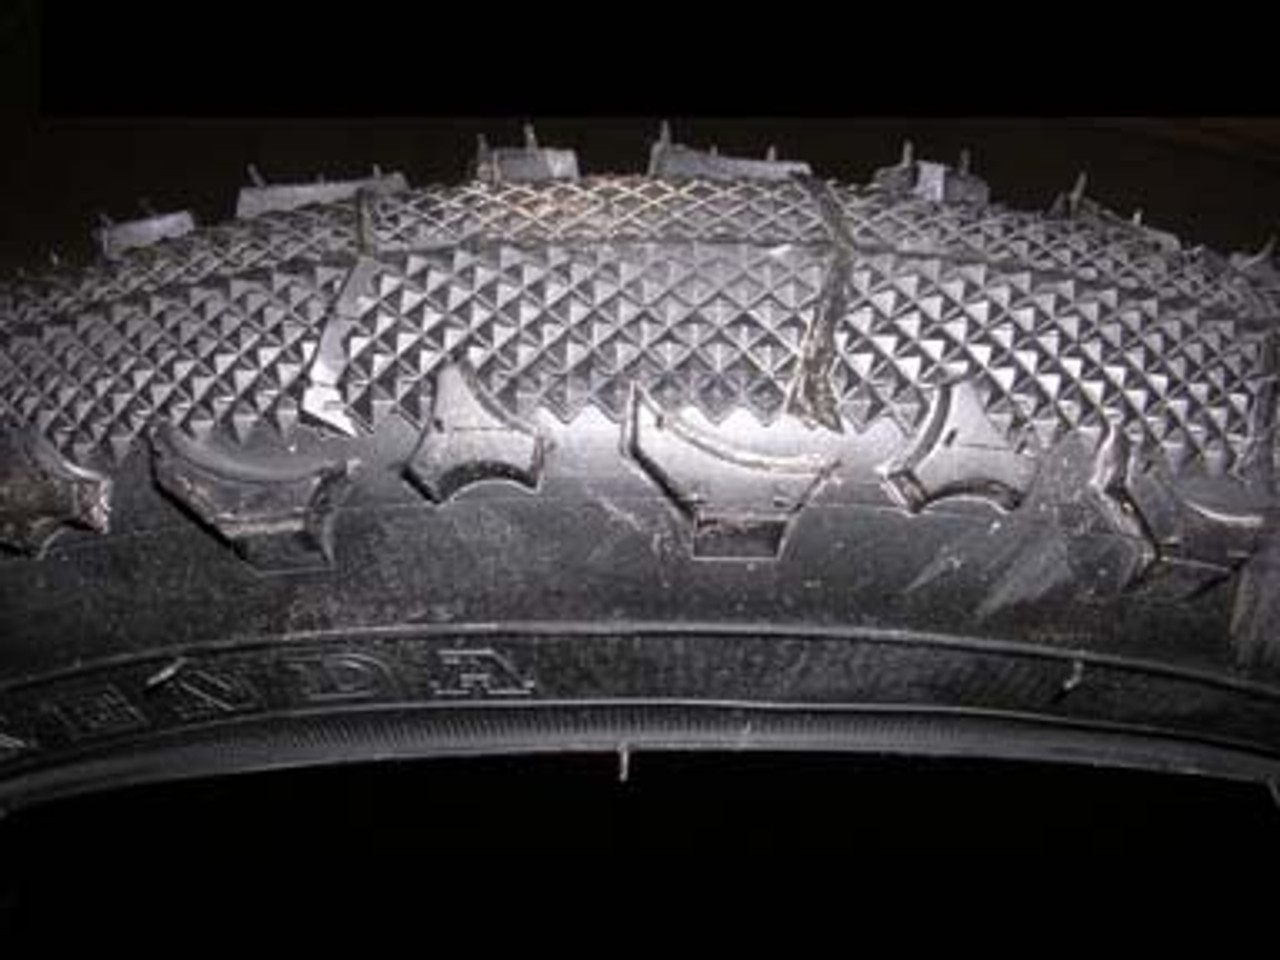 BOB Sport Utility Stroller Tire - Tread Pattern Close Up